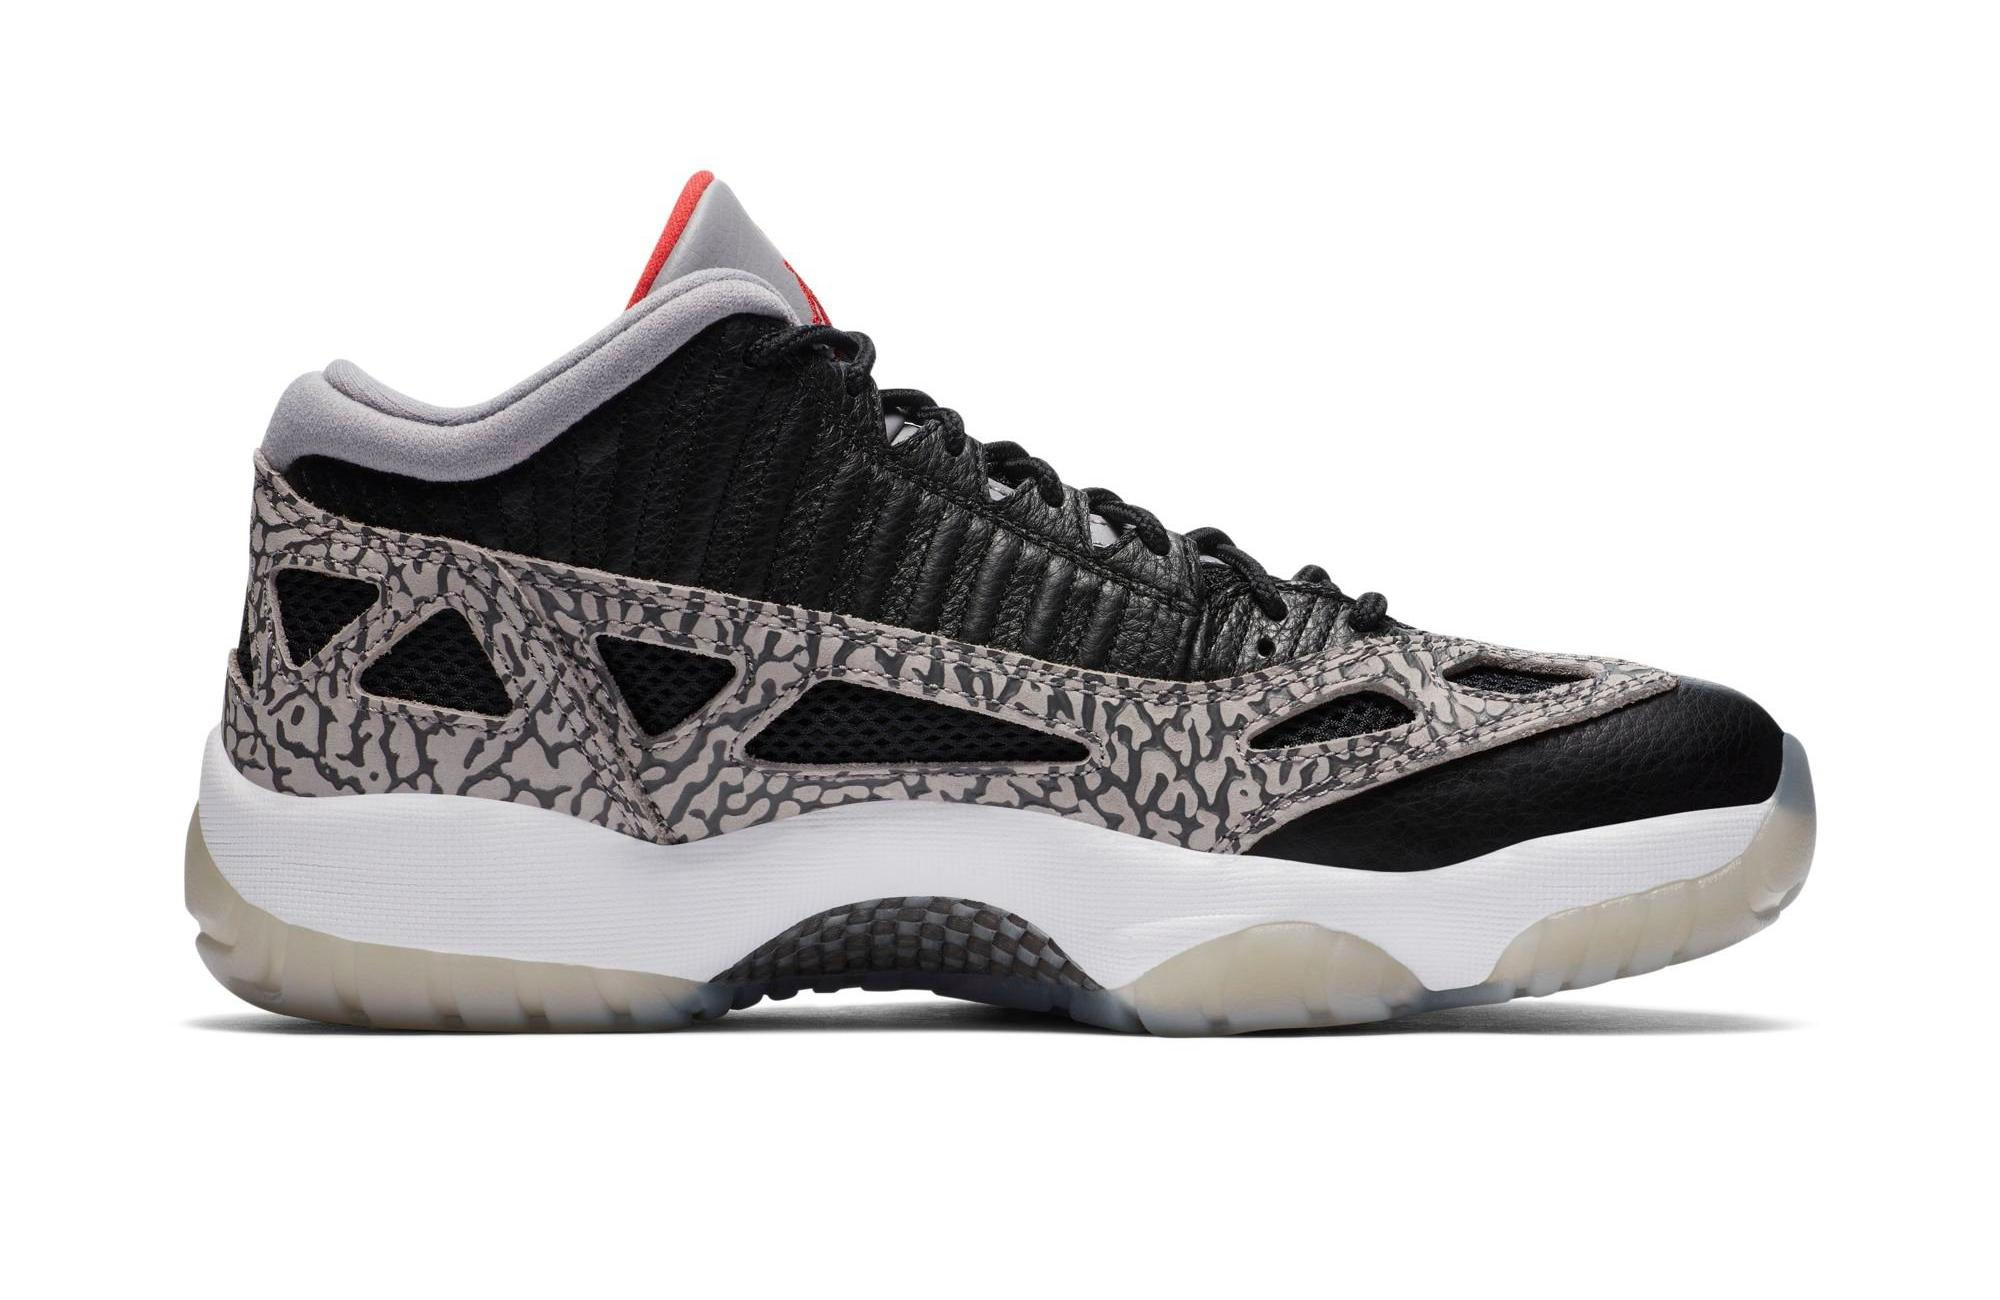 "Jordan 11 Retro Low IE ""Black Cement"" Black/Fire Red/Cement Grey Men's Basketball Shoe"